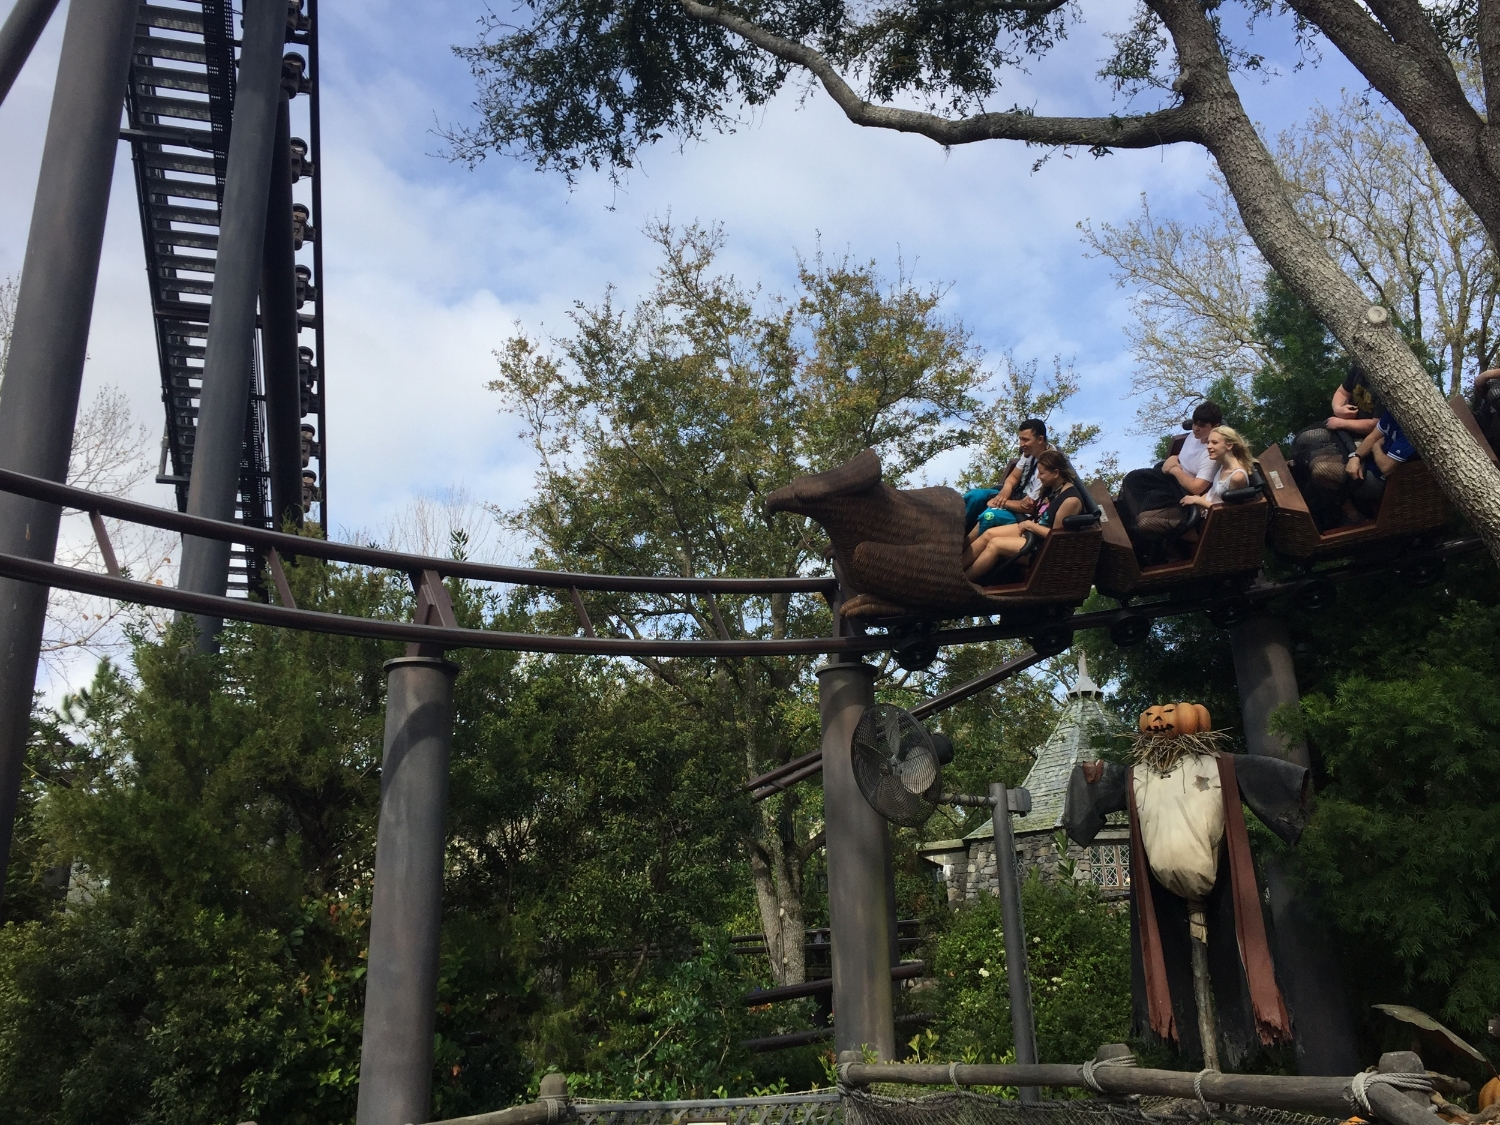 Flight of the Hippogriff Ride Vehicle Heading into a Left Turn